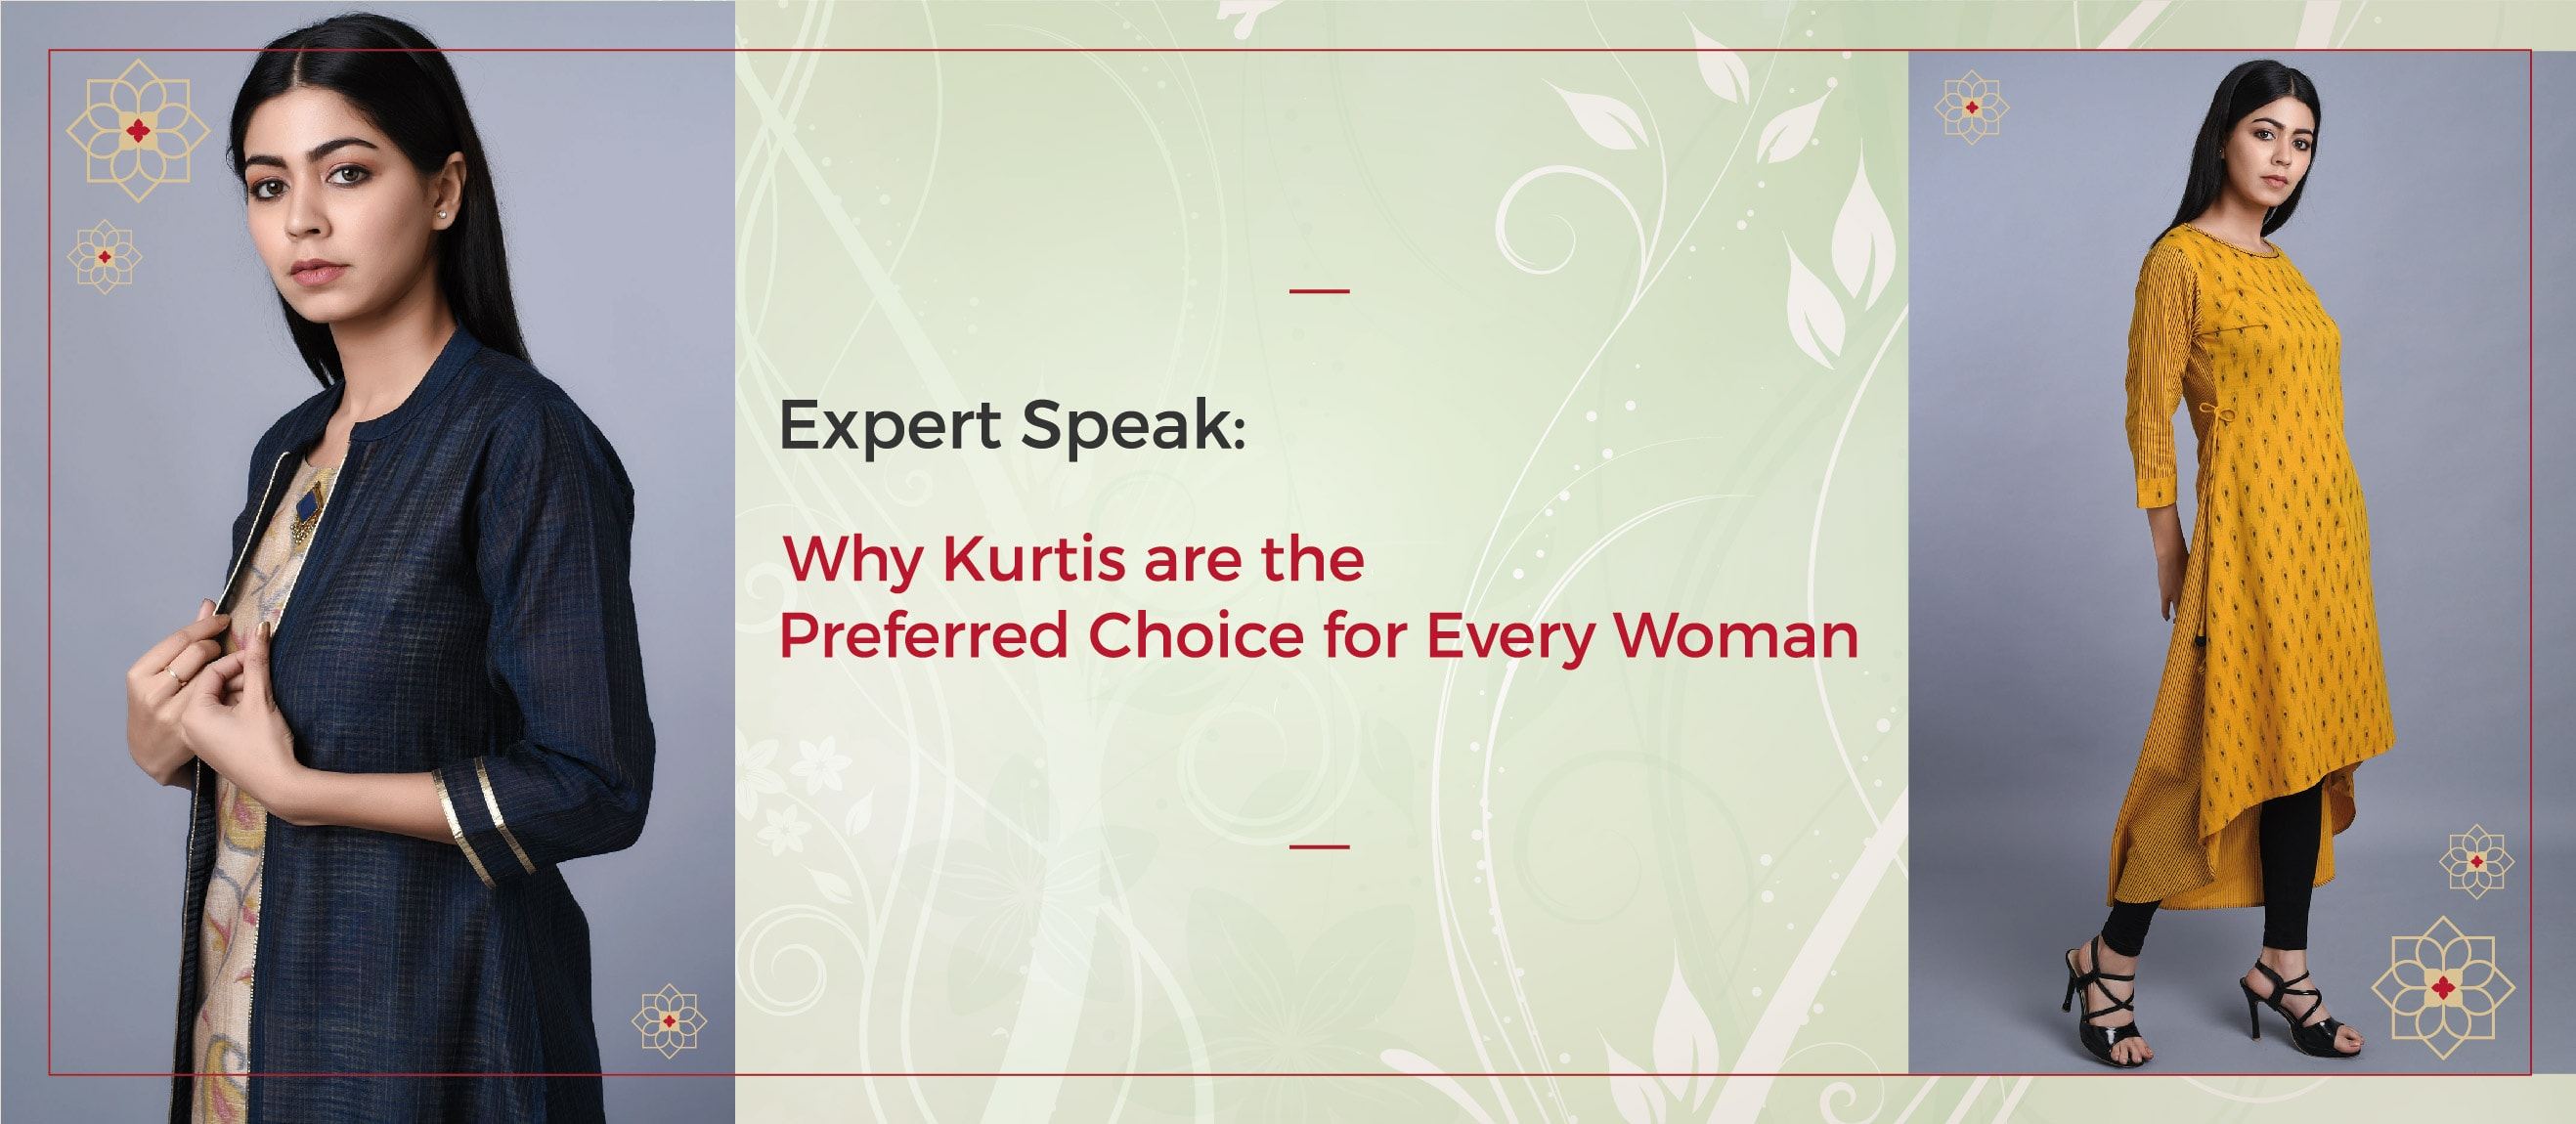 Expert-Speak-Why-Kurtis-are-the-Preferred-Choice-for-Every-Woman-min.jpg